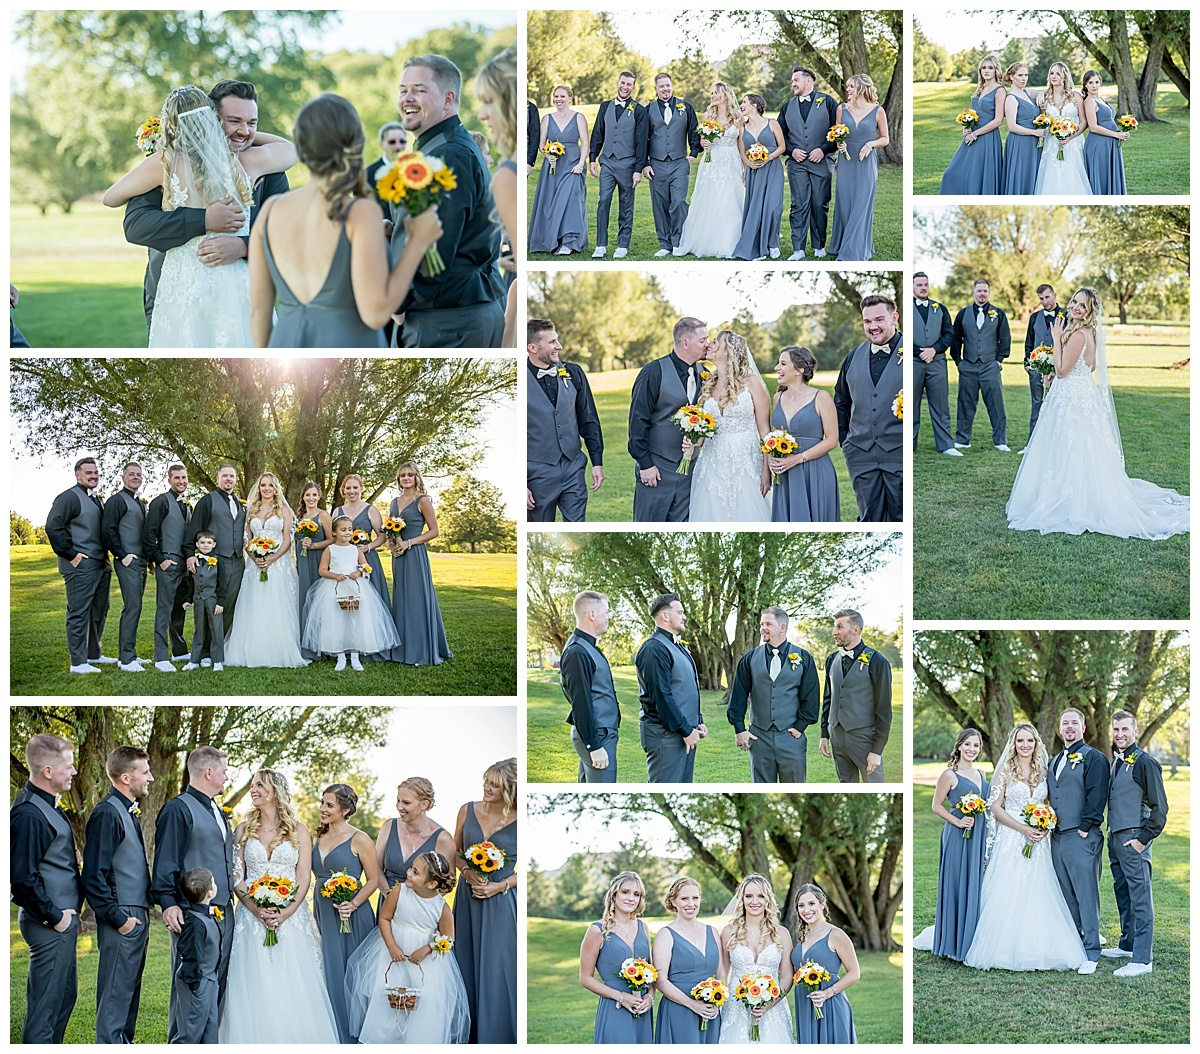 Silver Orchid Photography, Silver Orchid Wedding, Silver Orchid Portraits, Wedding Portraits